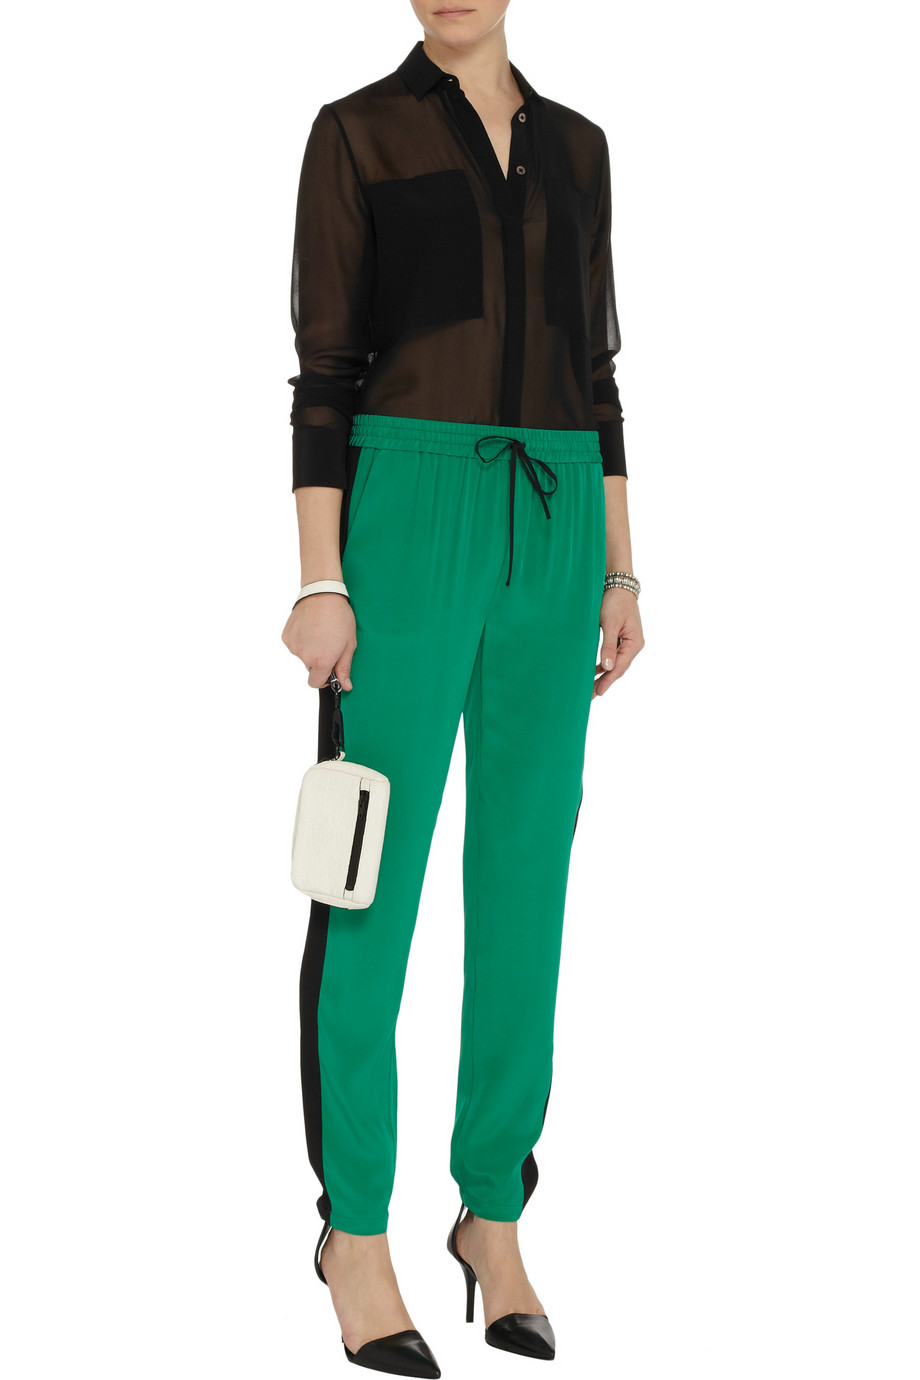 T by Alexander Wang Silk-chiffon shirt – 55% at THE OUTNET.COM